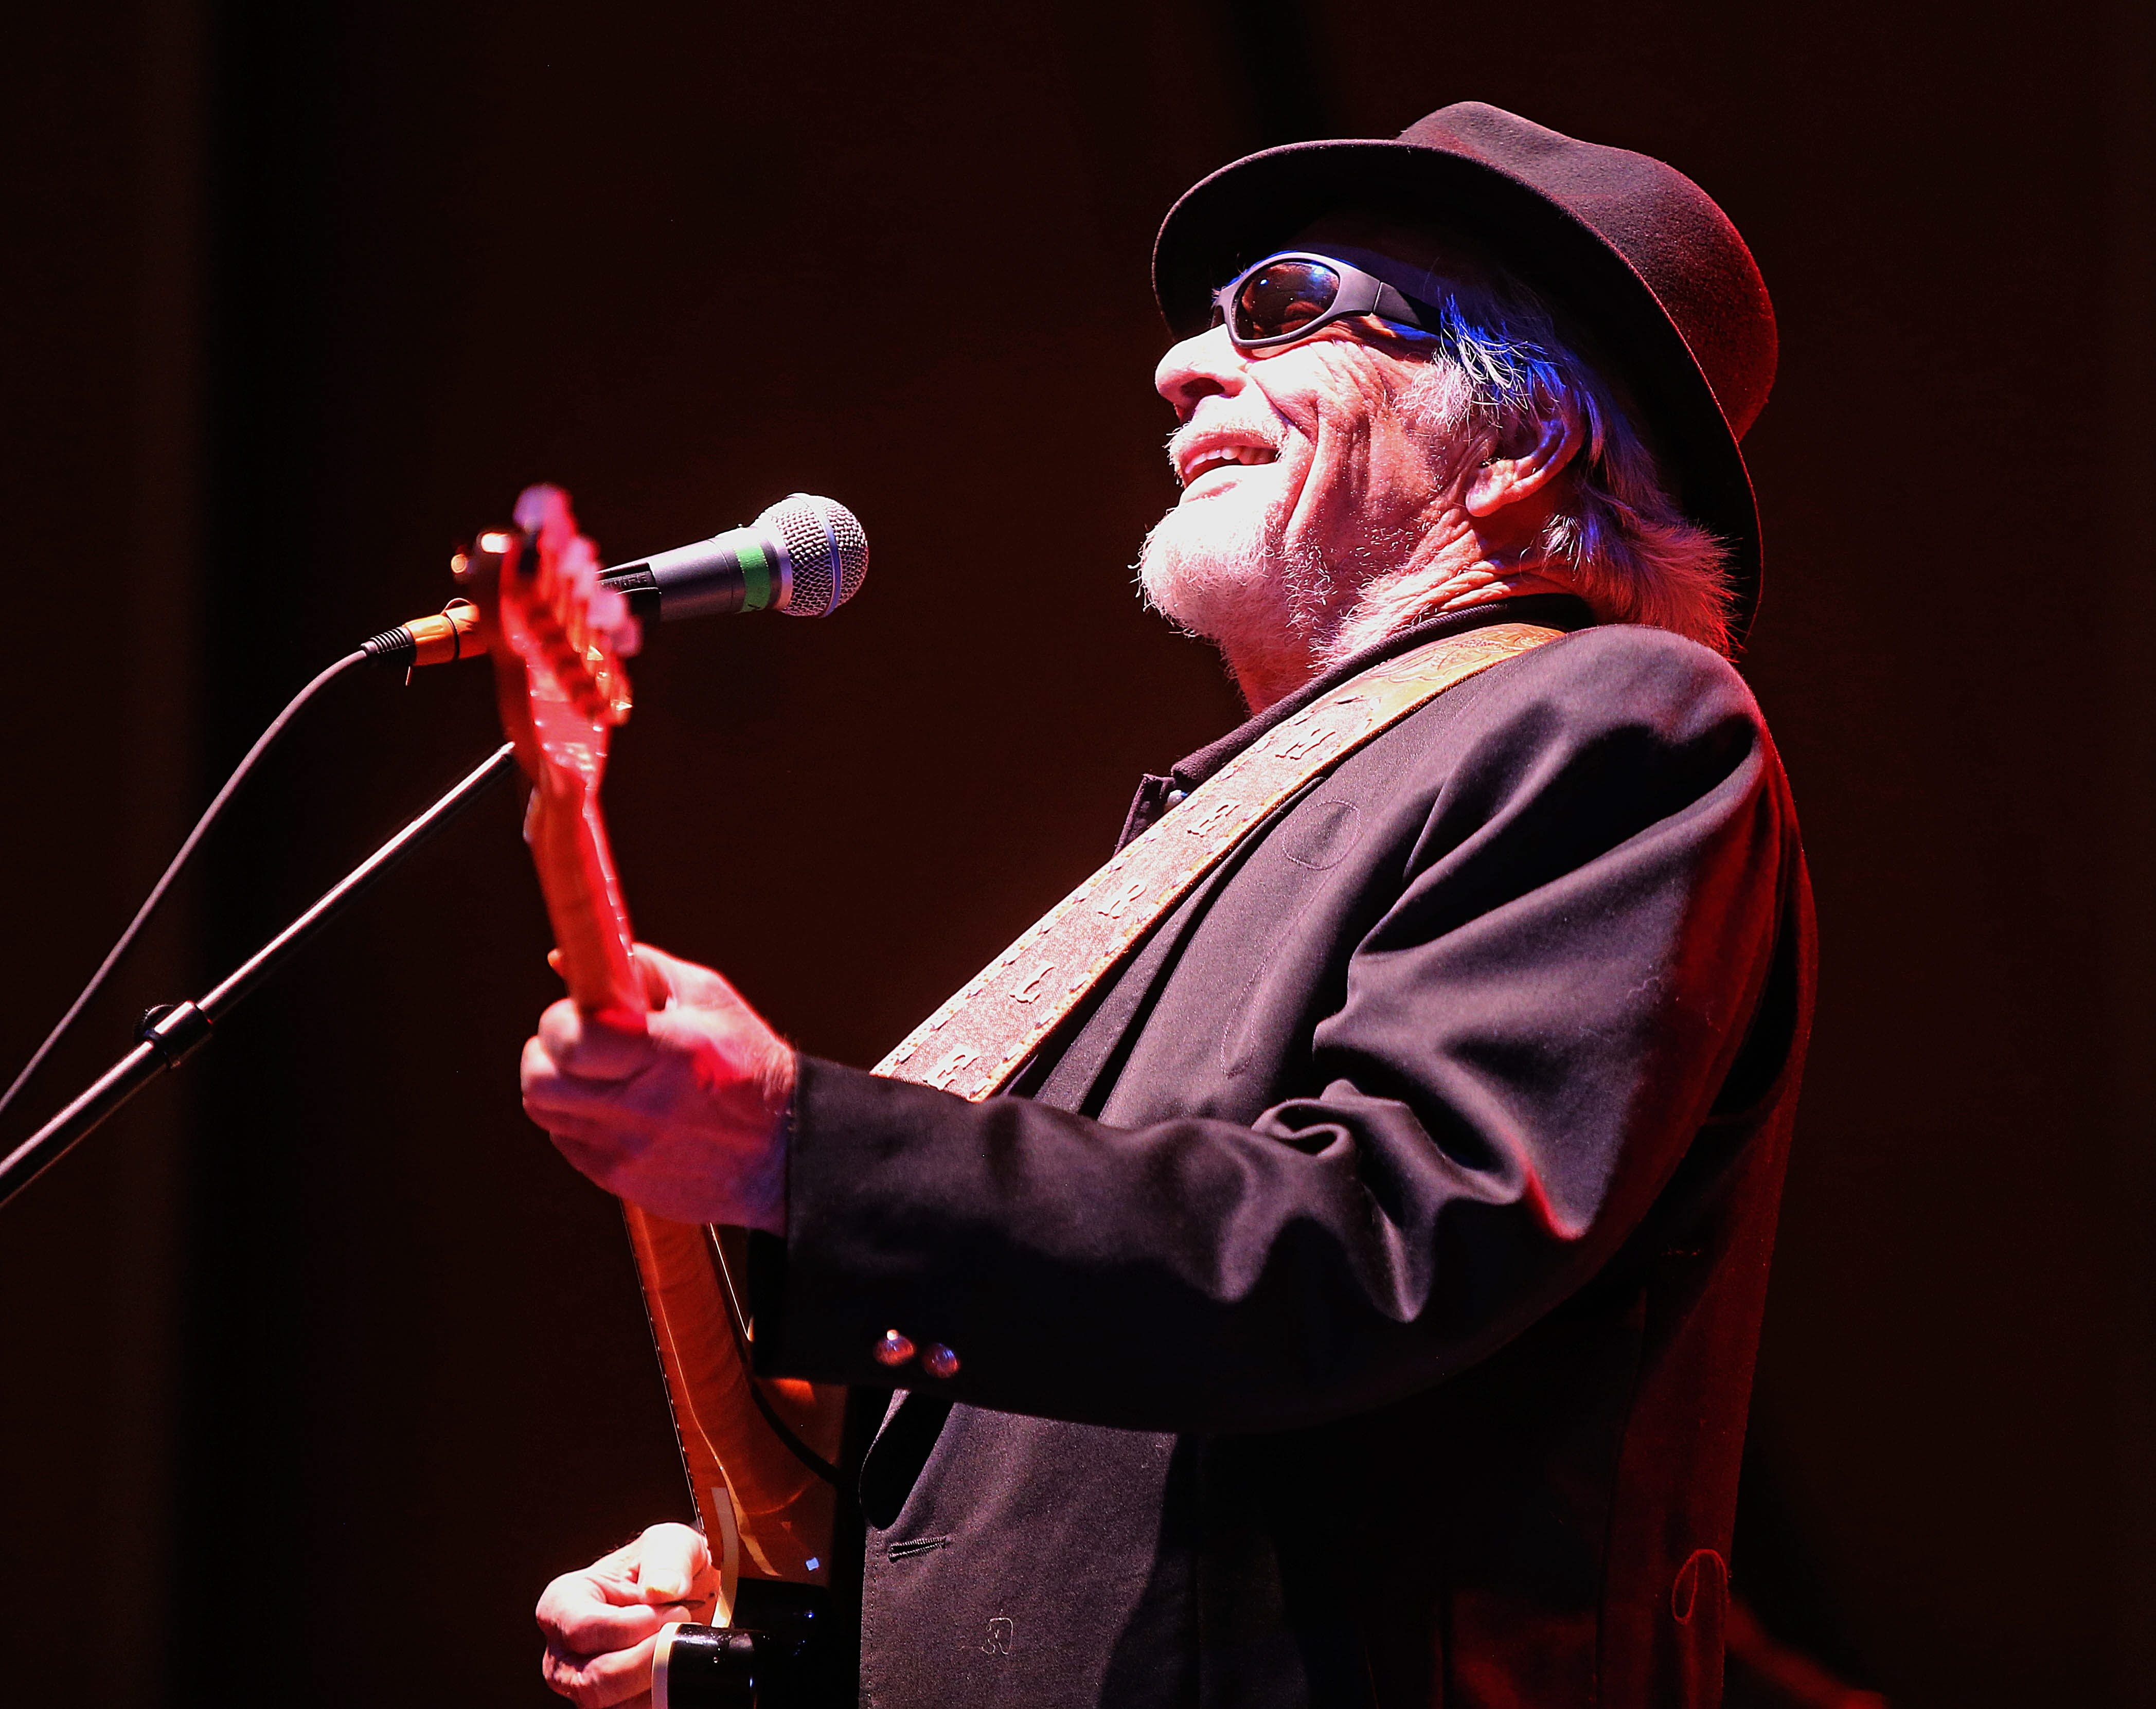 Country music legend Merle Haggard treated fans to a 23-song set at a packed Kleinhans Music Hall on Friday.